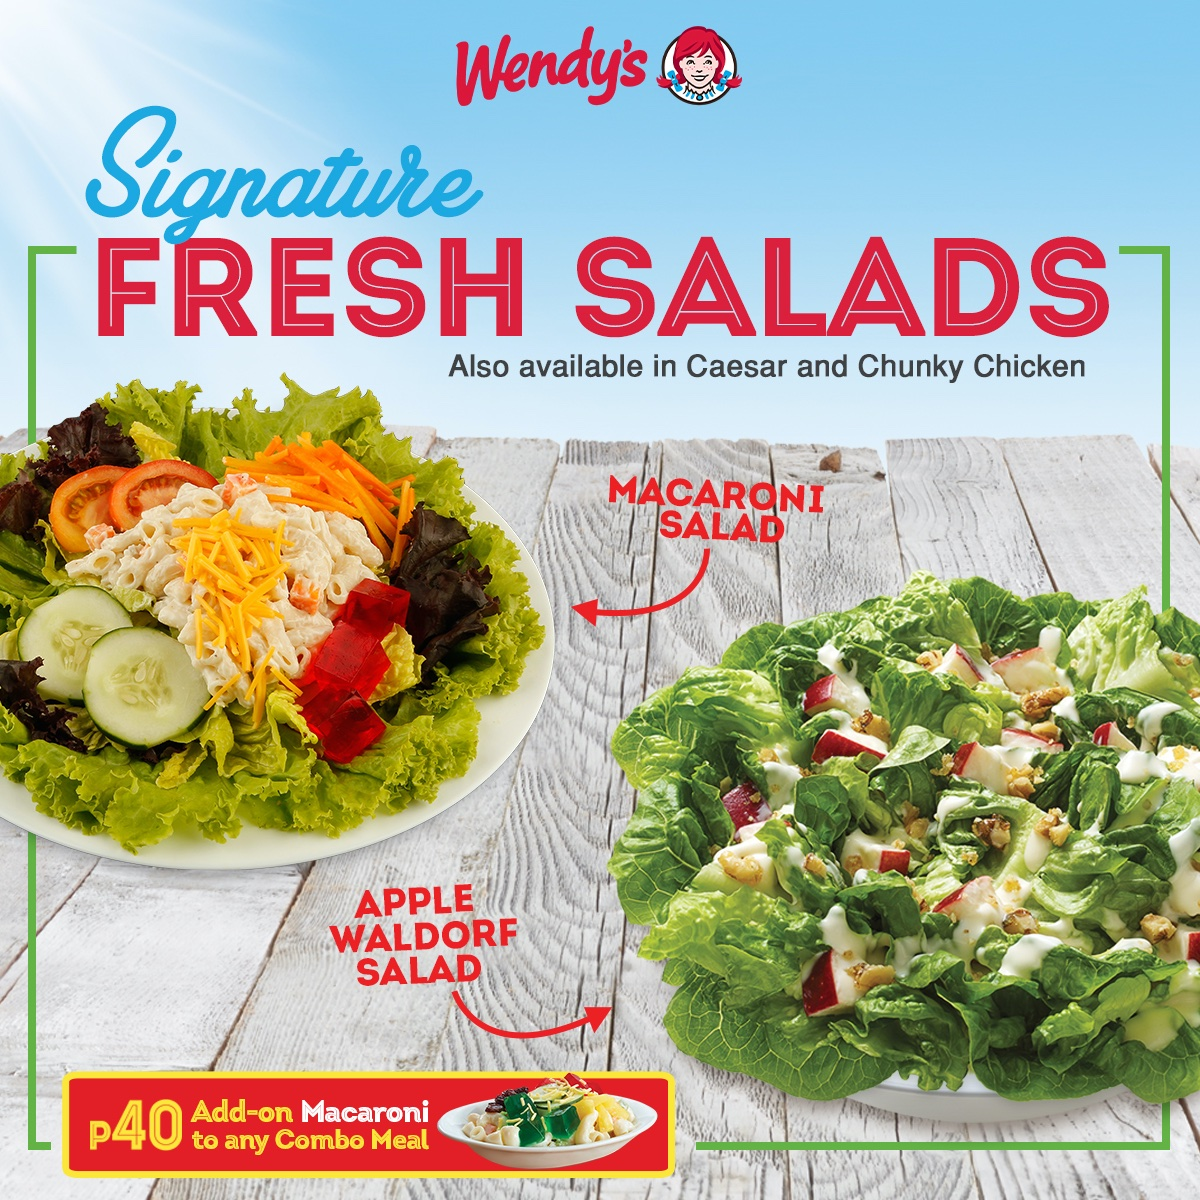 Go for some fresh greens with Wendy's Signature Salads. Paired best with Dave's Burgers!  Order for dine-in or take-out at your nearest Wendy's today! Also available for delivery via 8-533-3333 or https://t.co/JN0EZHgSA7. https://t.co/7Swvei6Dul